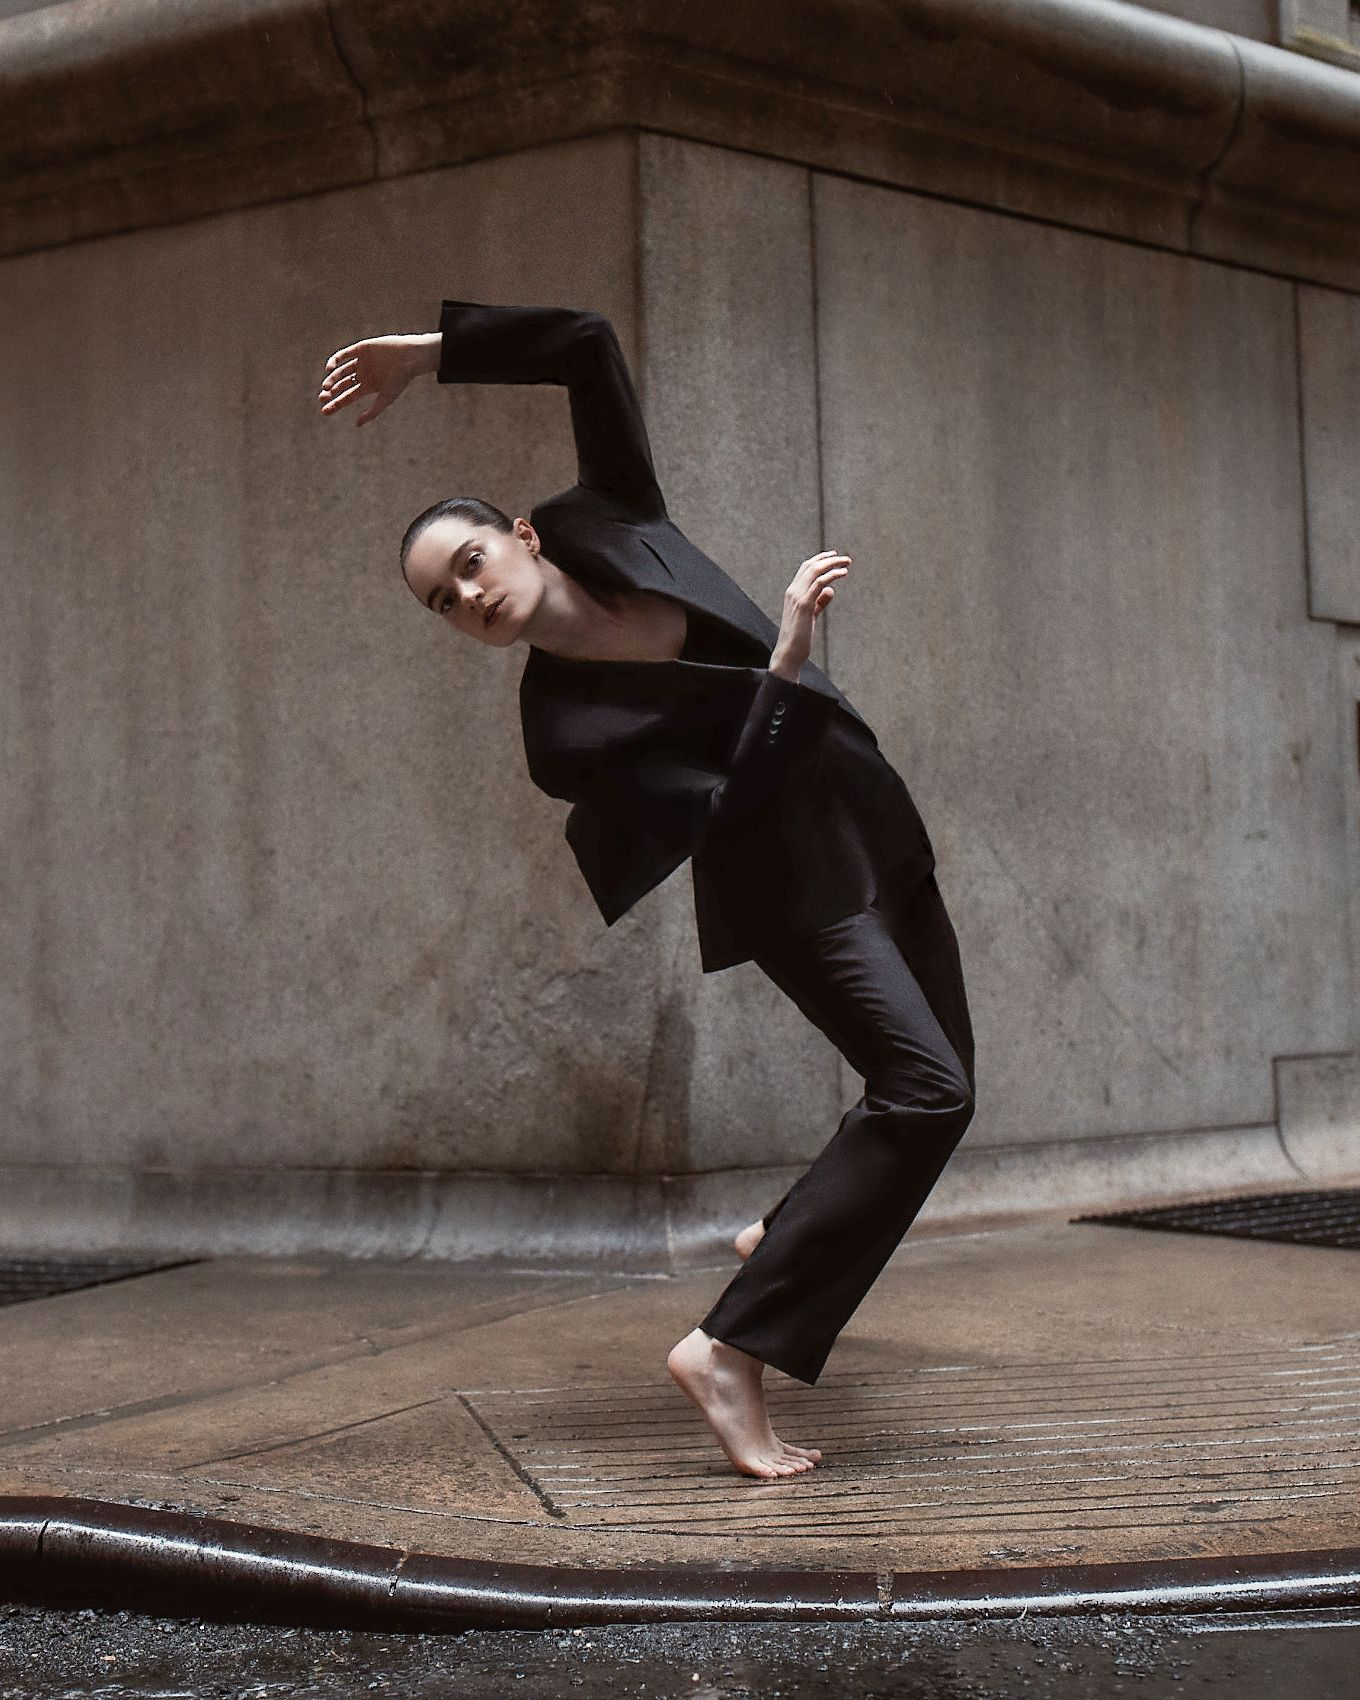 Shapes And Silhouettes Dancer Emma Portner Brings New Energy To Boss Tailoring Through Her Art Suitchallenge Suit Shop Boss Jersey Sweater